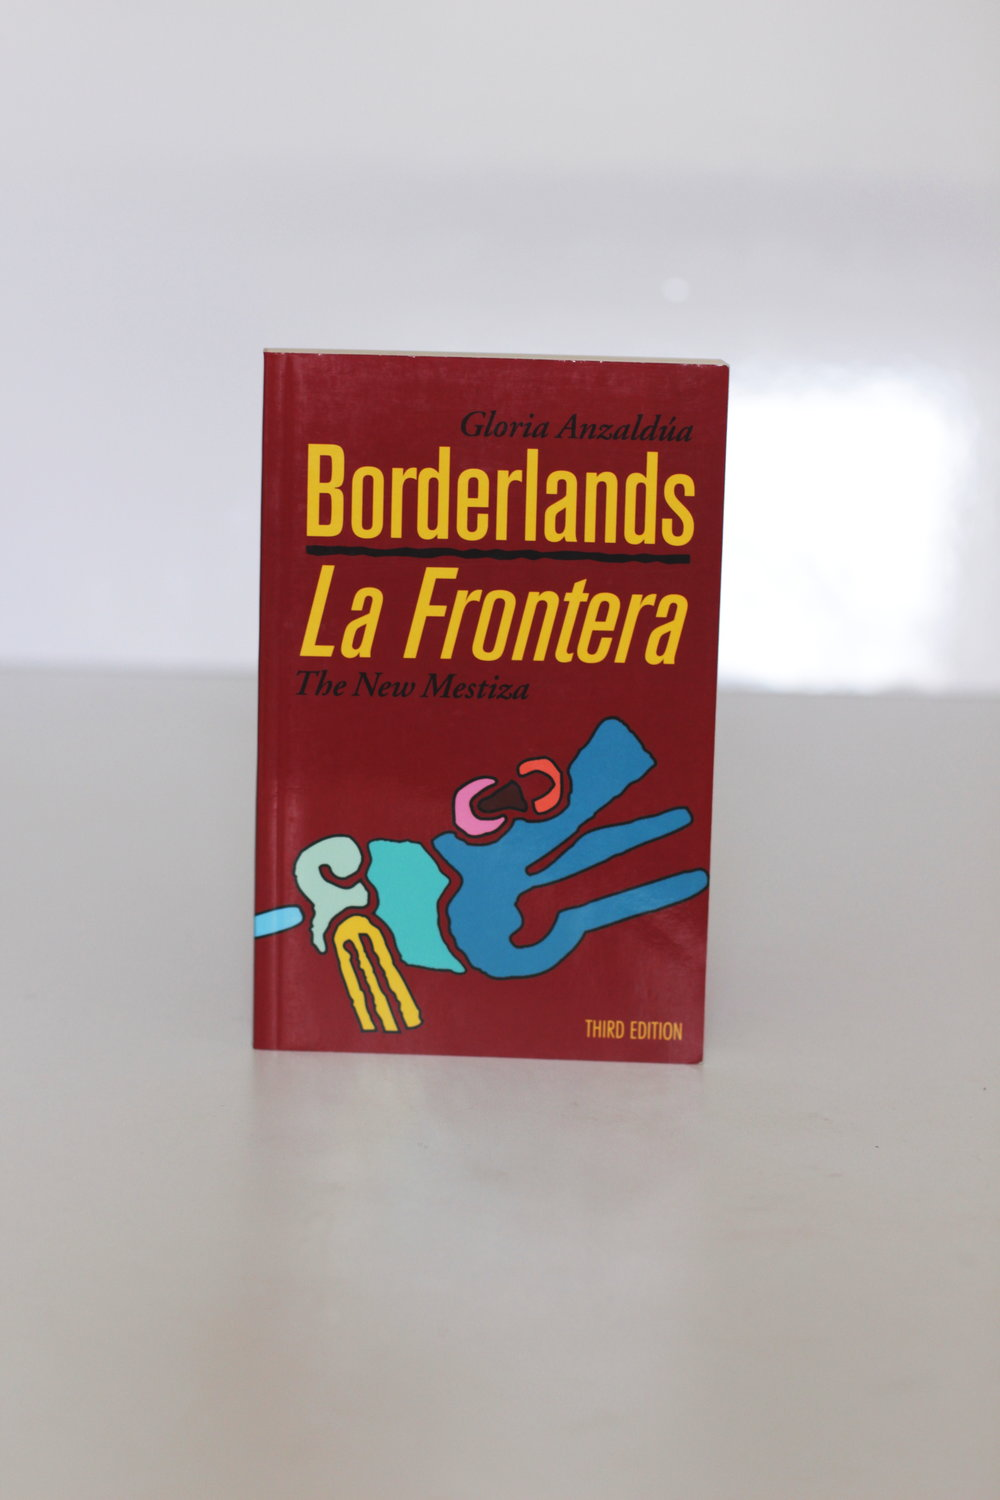 Borderlands: La Frontera – Gloria Anzaldua